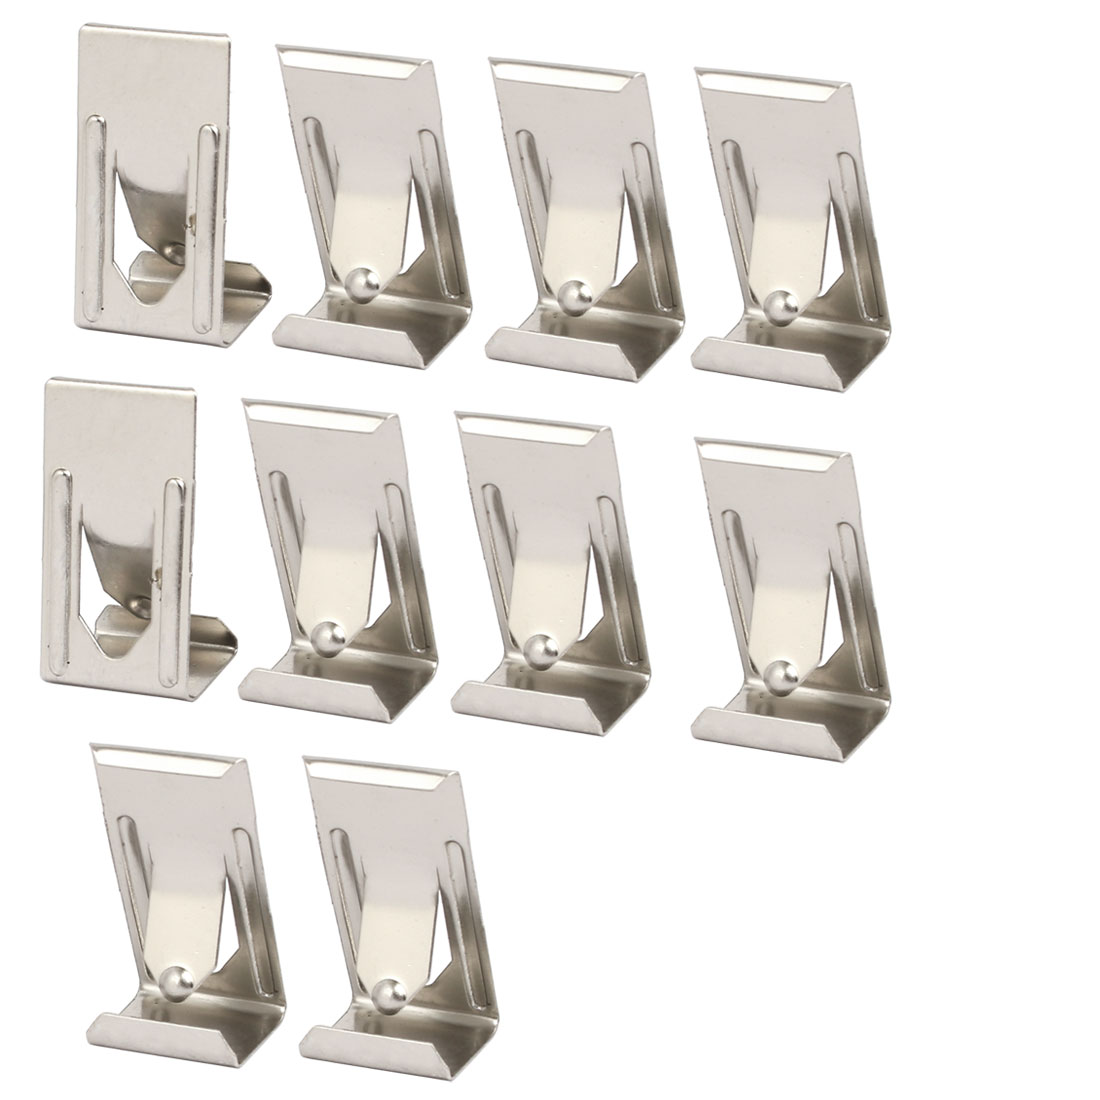 26mmx14mm Picture Photo Frame Metal Spring Turn Clip Hanger Siver Tone 10pcs